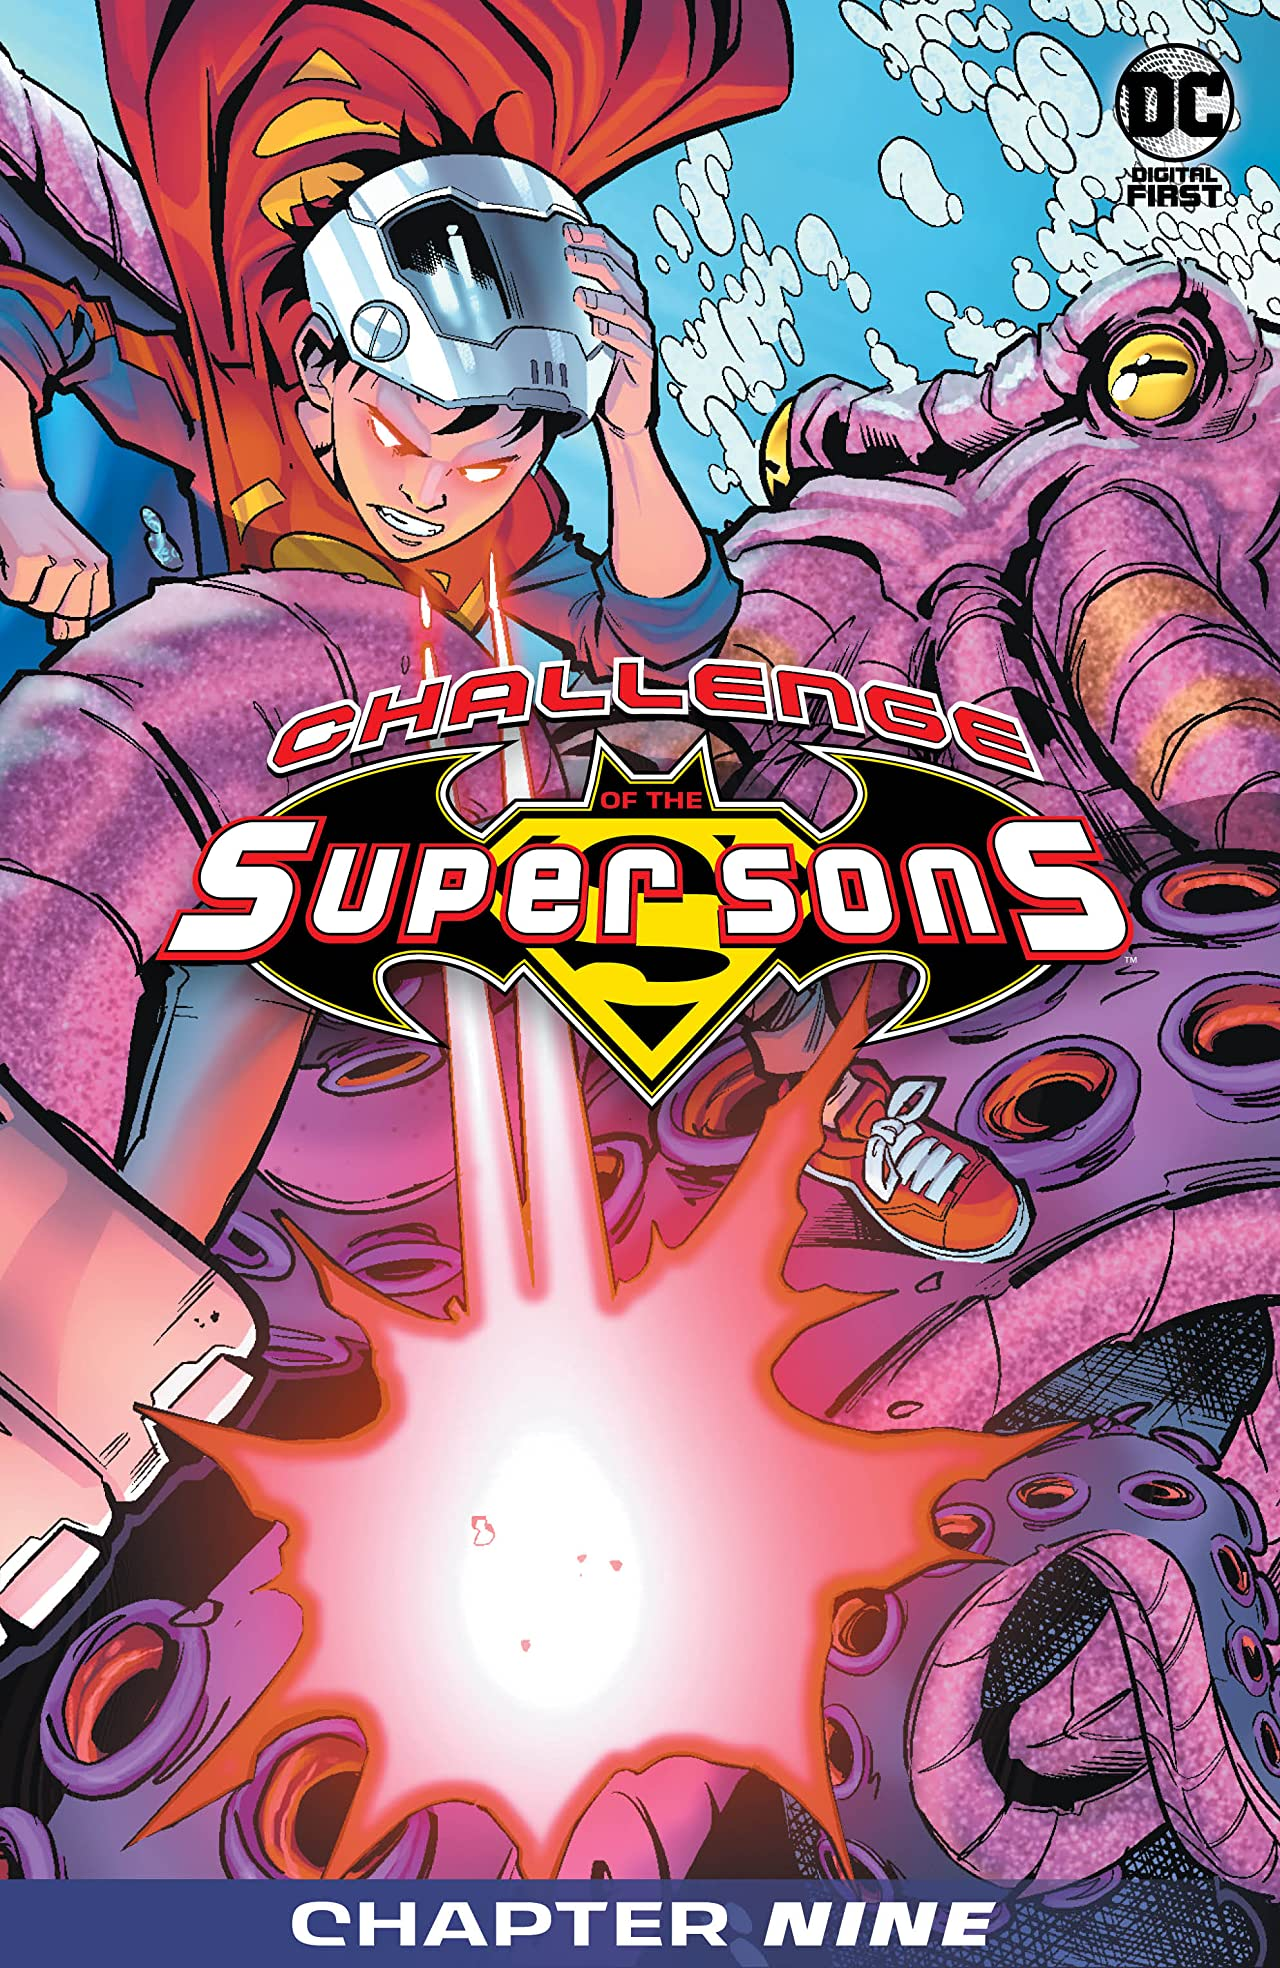 Challenge of the Super Sons #9